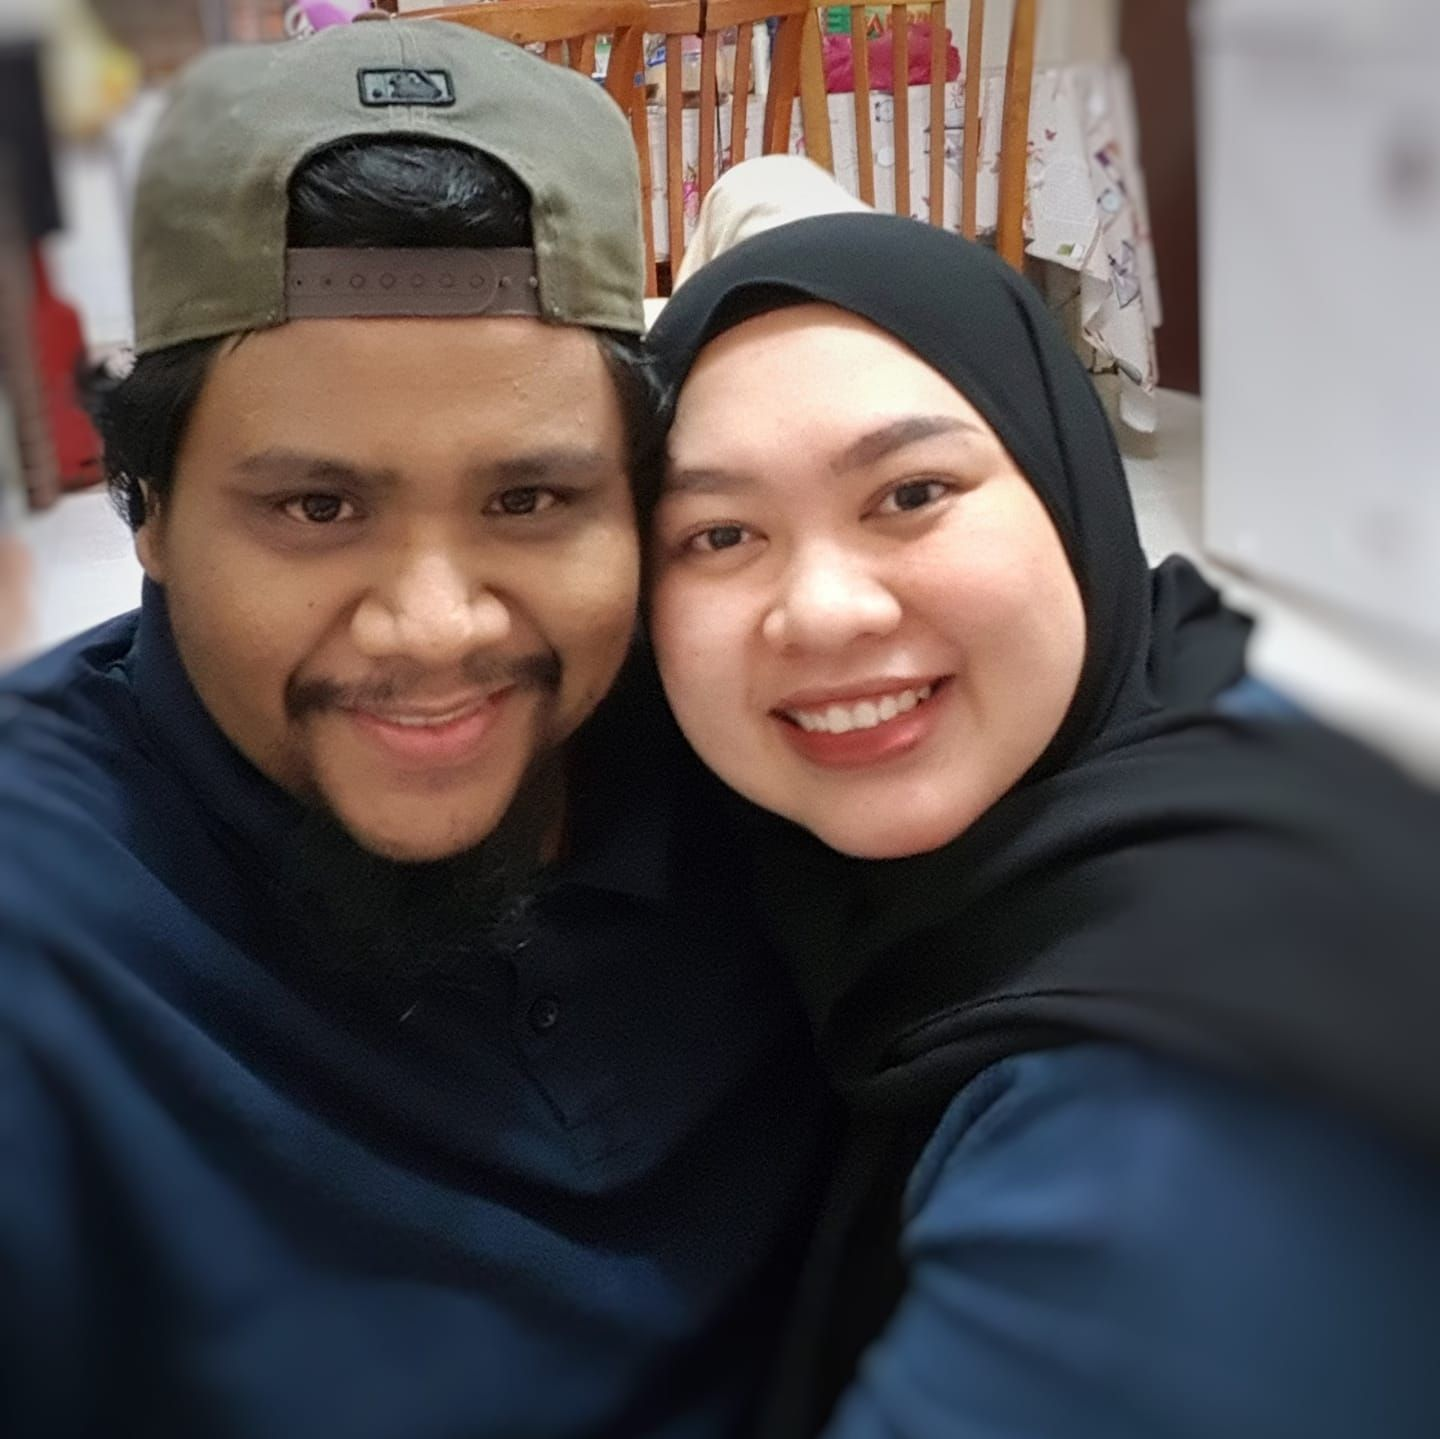 Muhammad Afiq bin Hamidi smiles in a wefie with his wife. He is wearing a cap backwards and has a mustache.